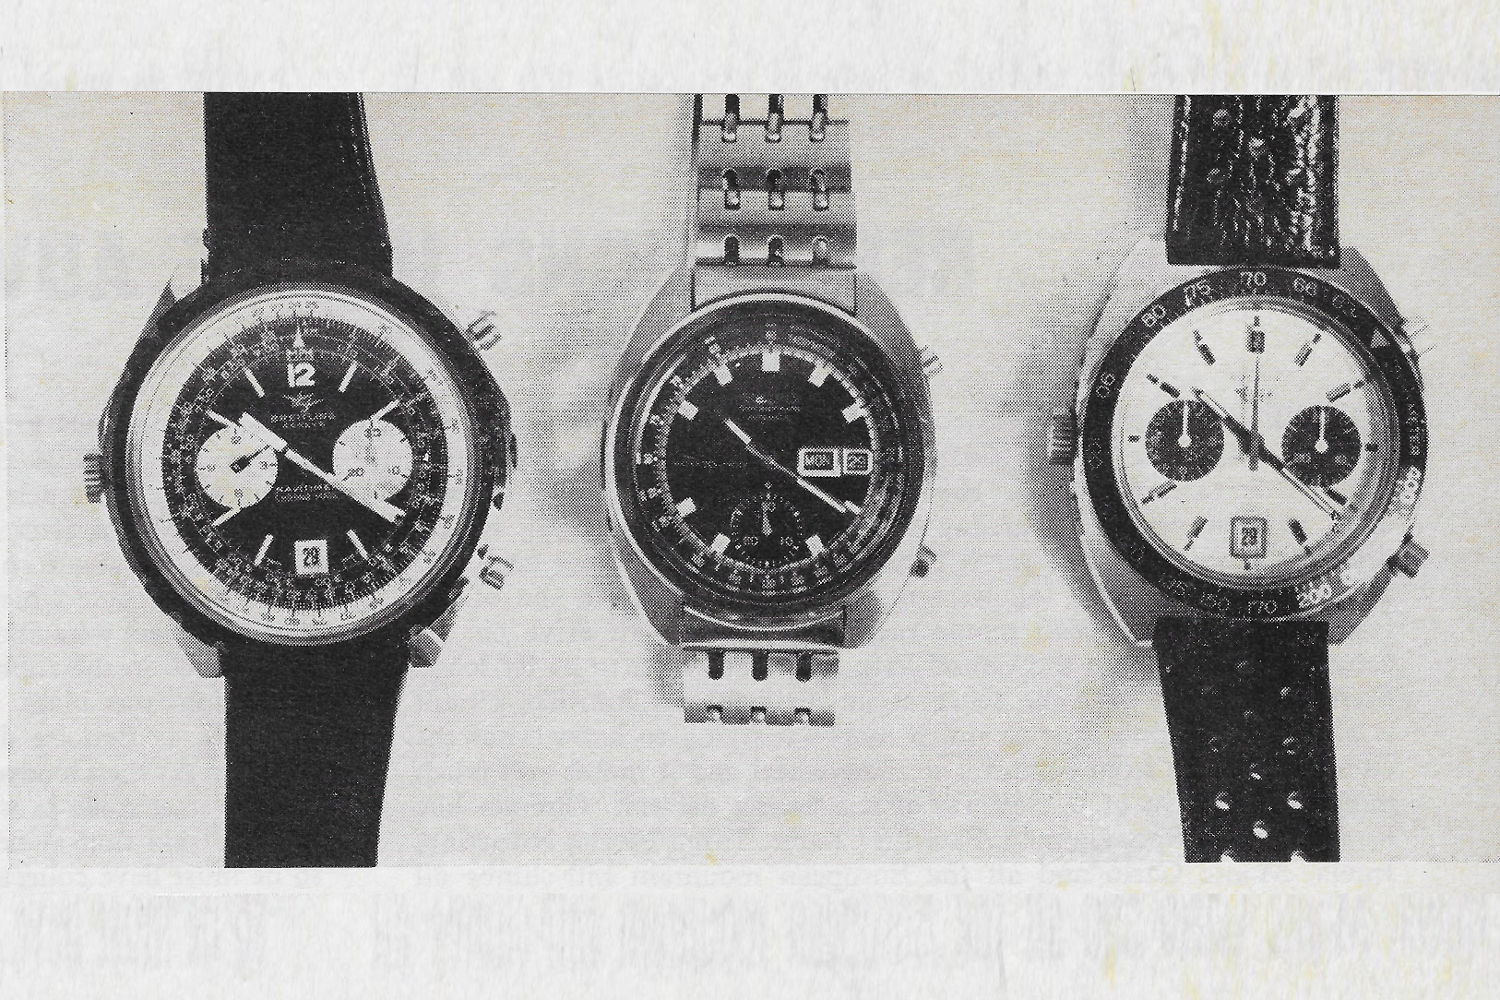 The Three Automatic Chronographs—l.r. The Breitling Navitimer, the Seiko and the Heuer.